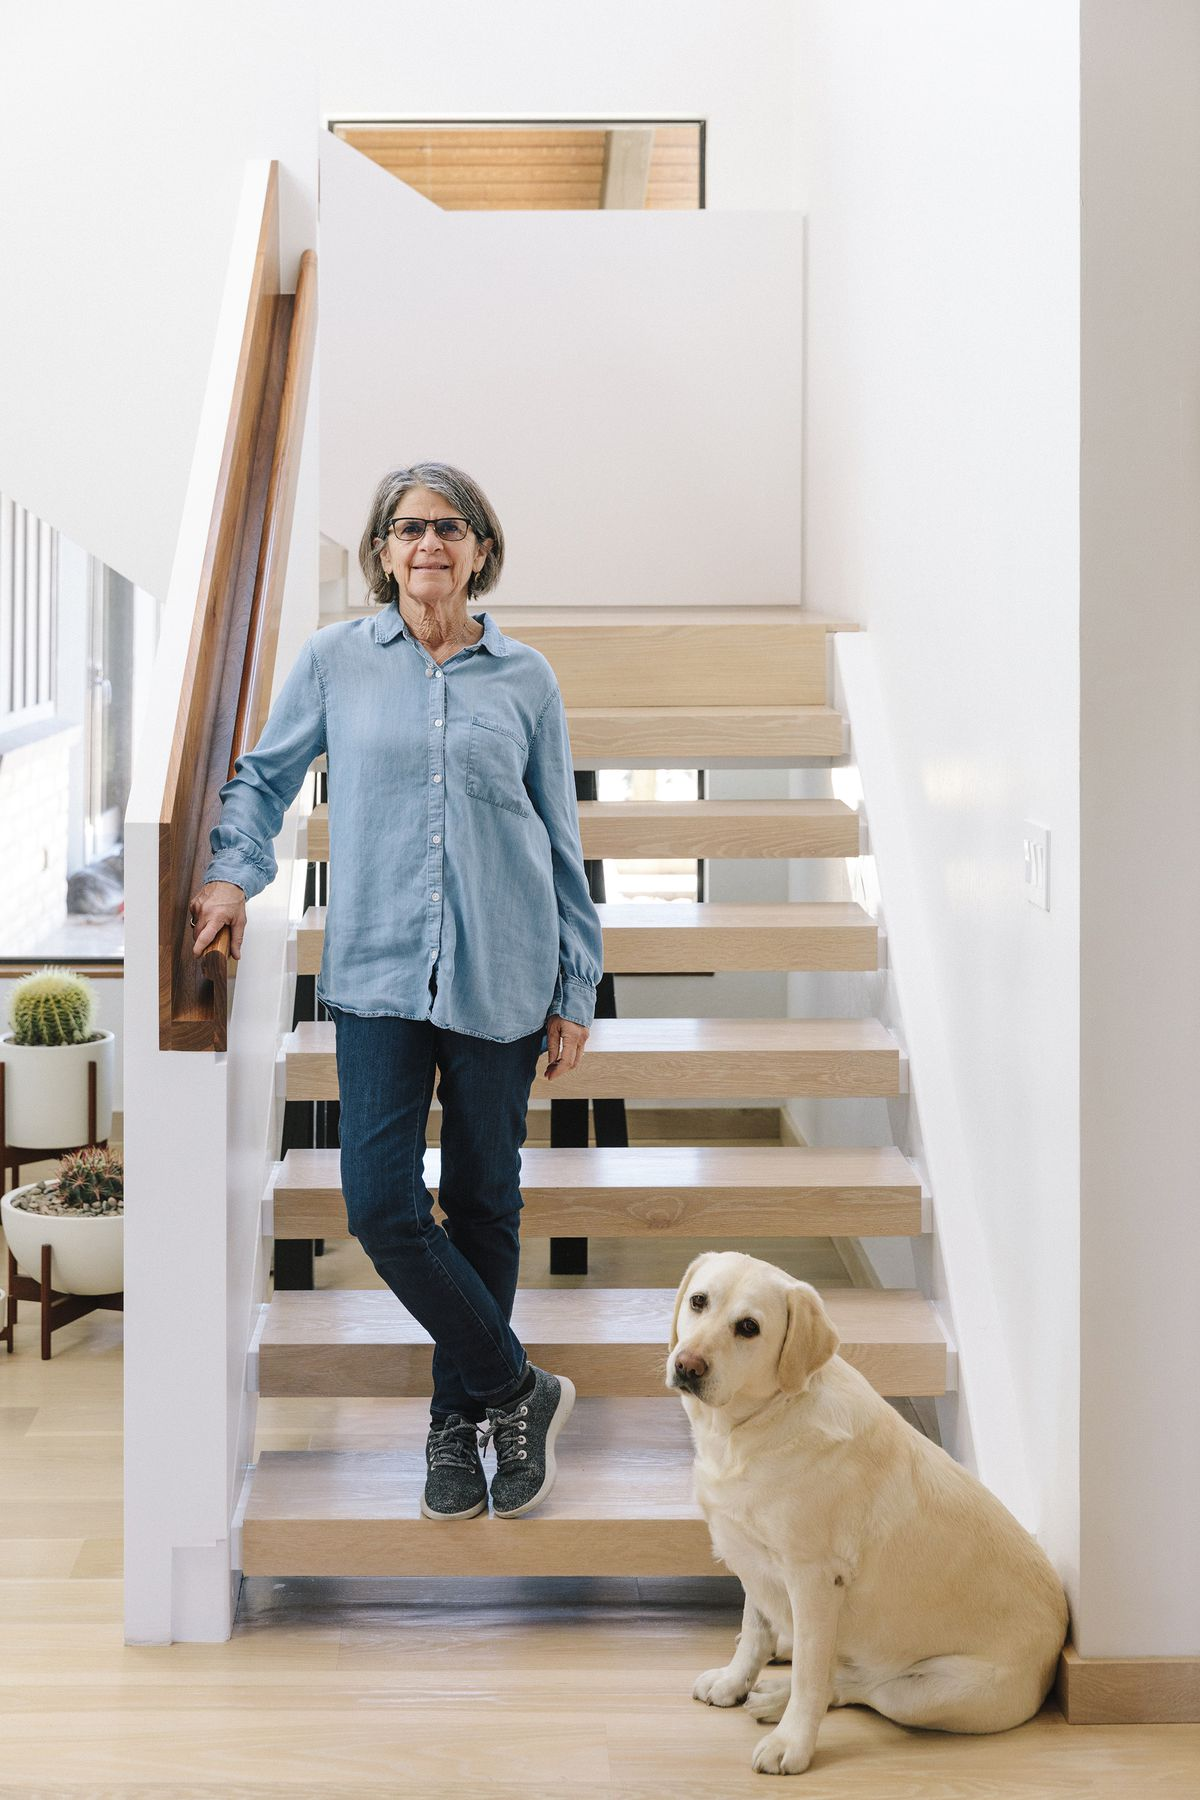 The homeowner, a woman, stands on a staircase looking at the camera. A dog stands on the staircase next to her. The stairs are wooden and the walls are painted white.